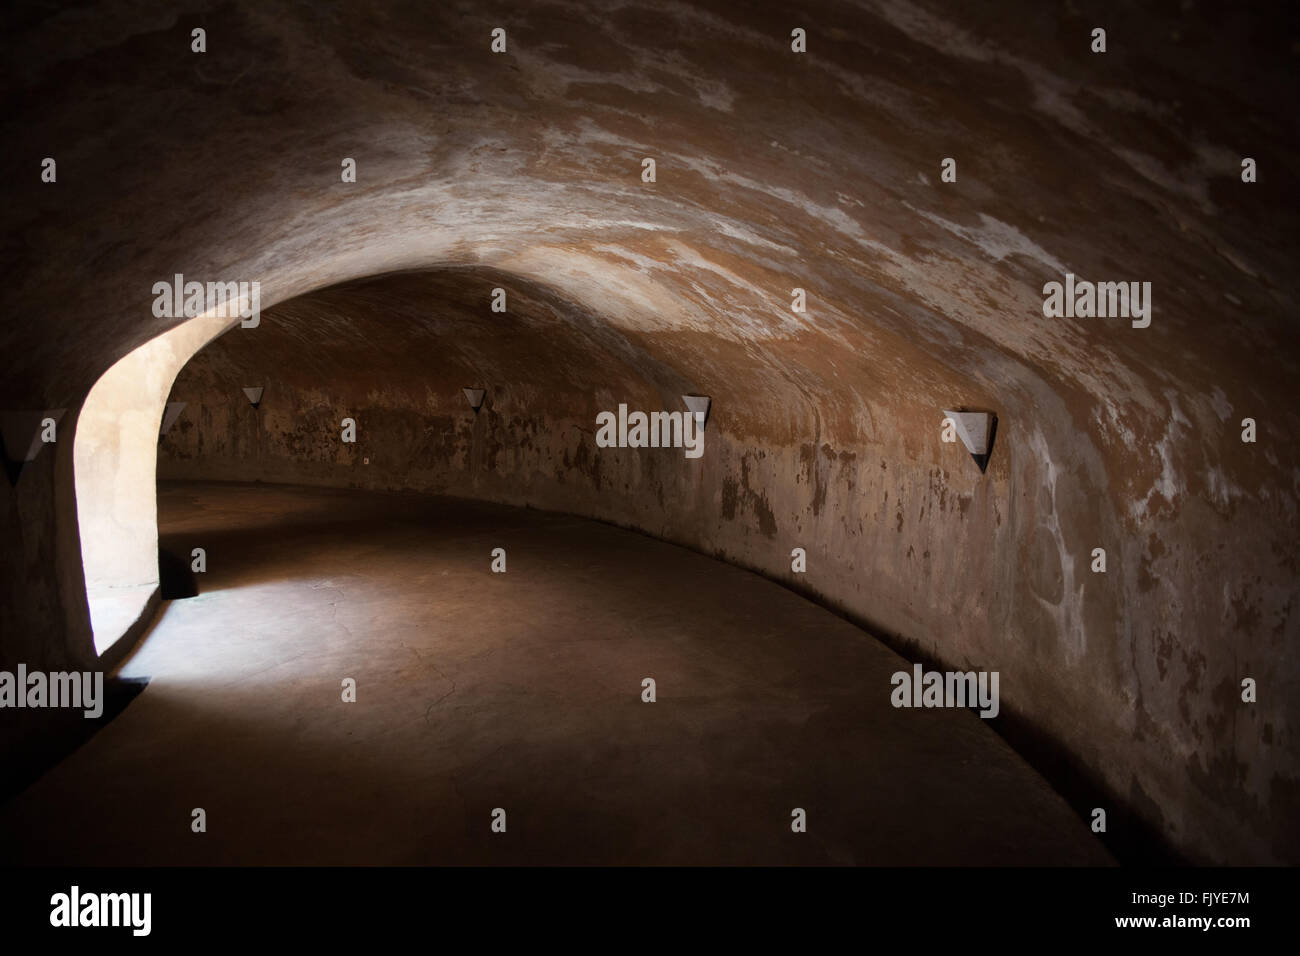 Interiors Of A Tunnel - Stock Image